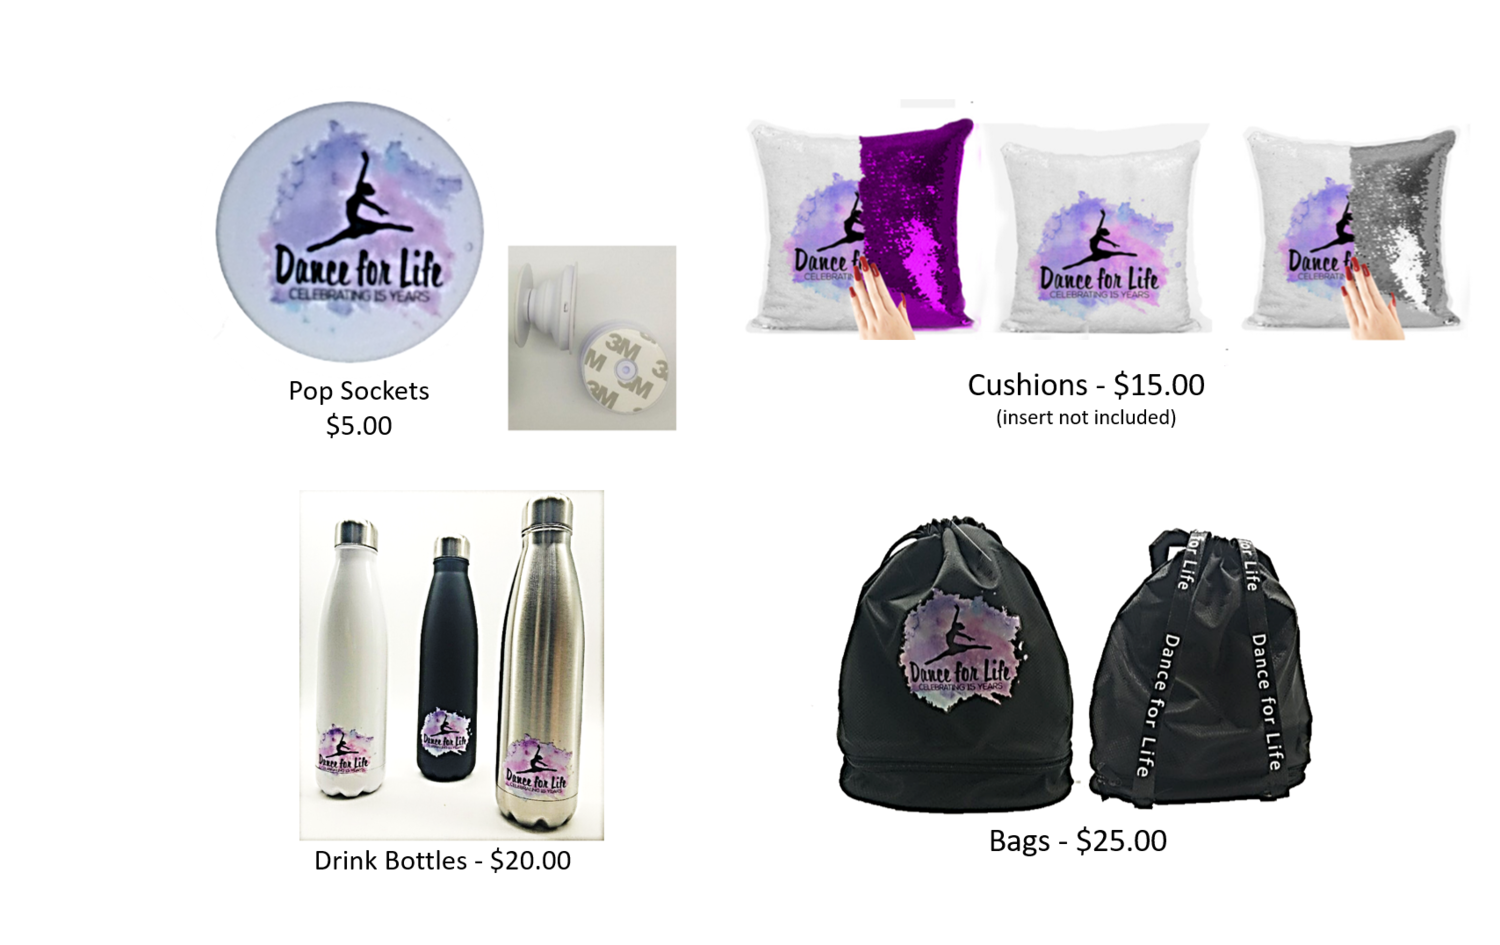 Drink Bottles / Bags / Cushions / Pop Sockets - Prices starting @